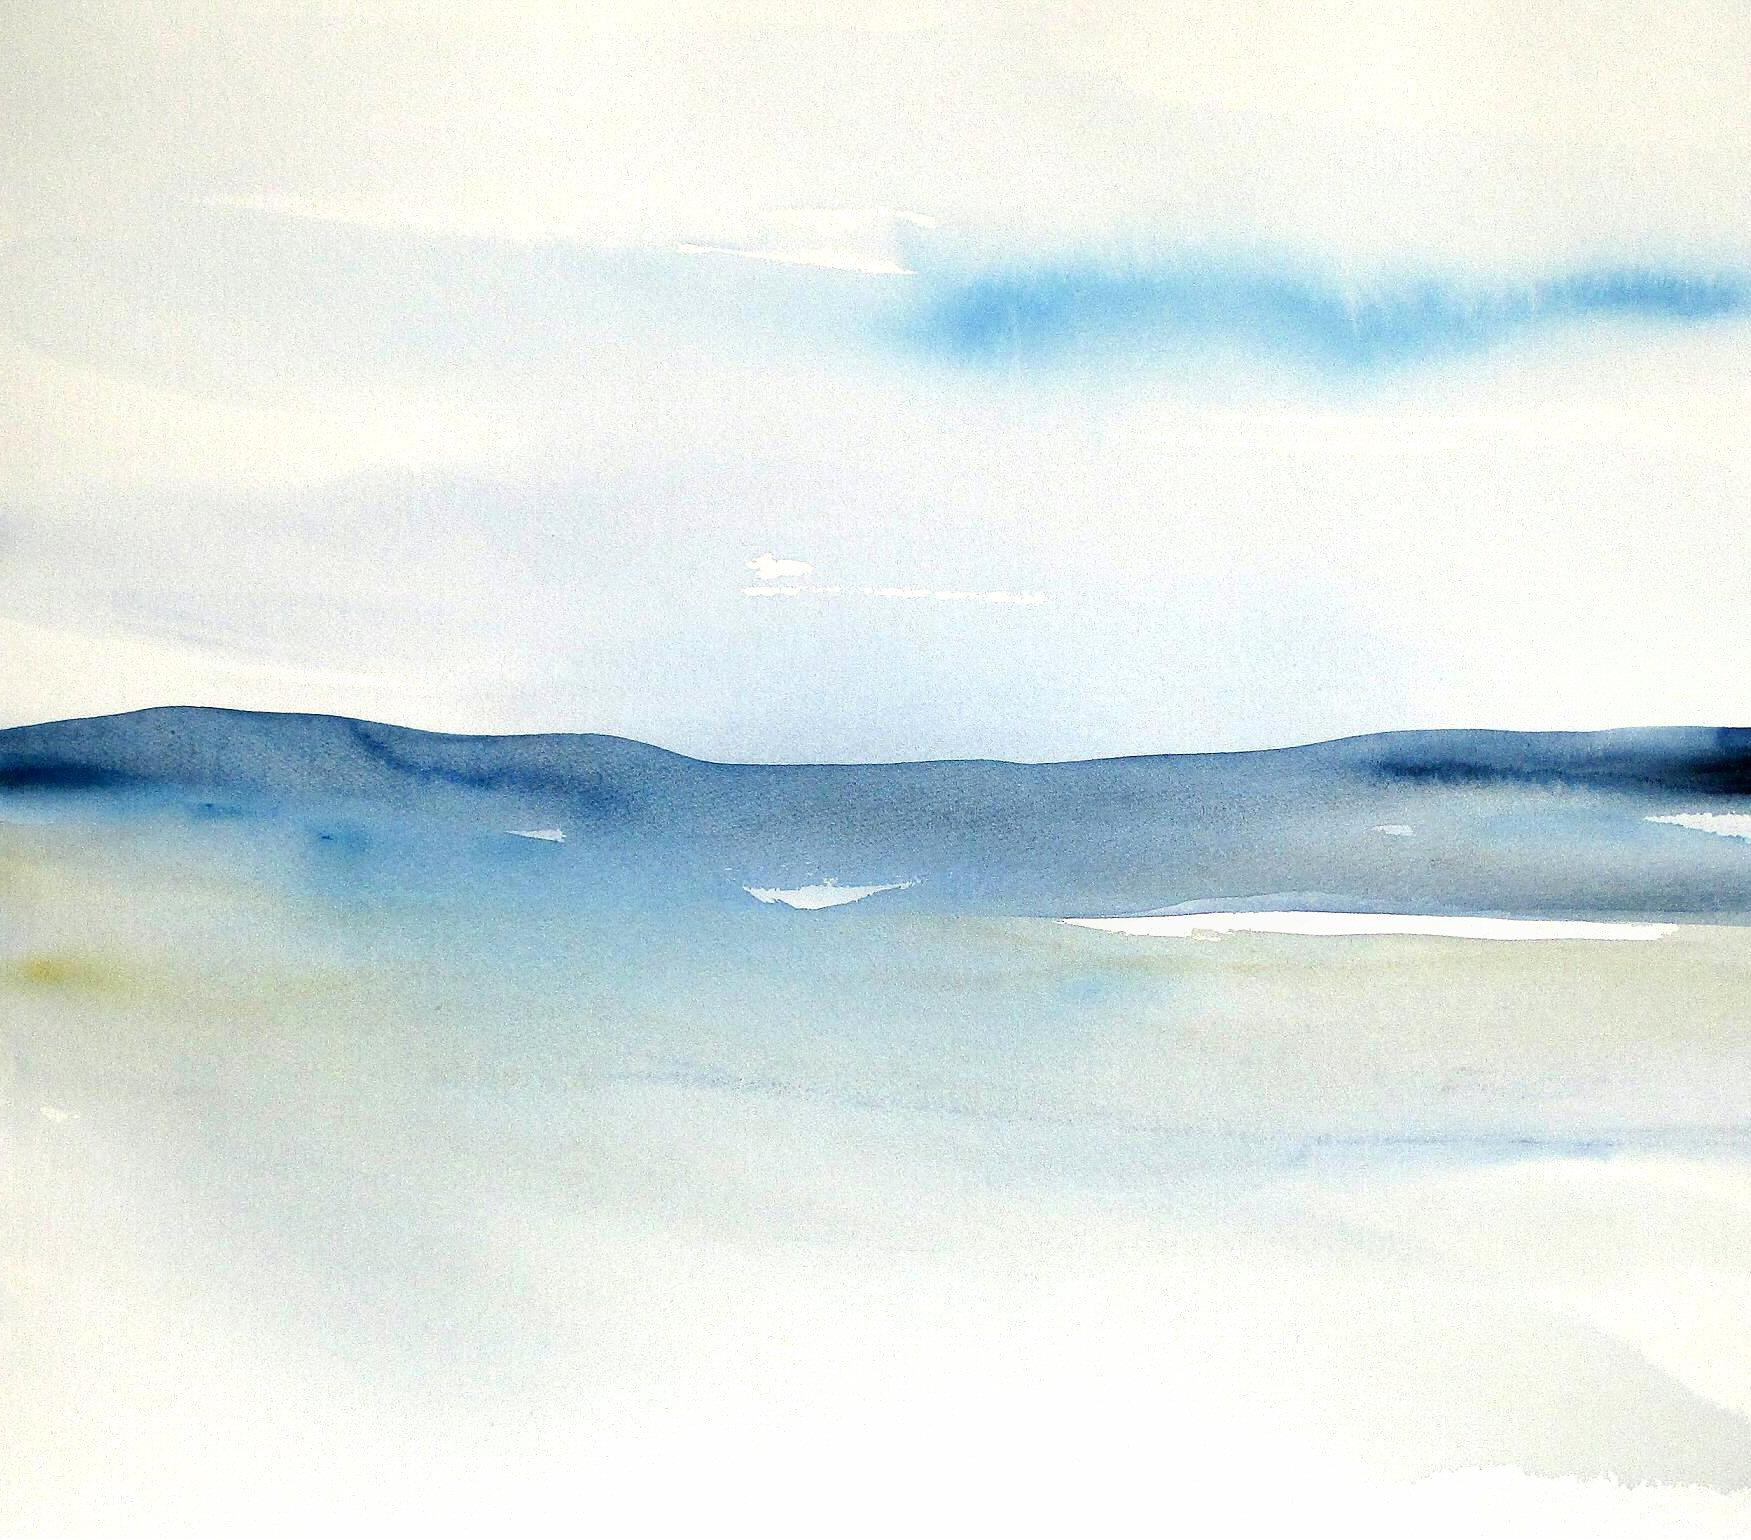 1751x1540 Original Contemporary Abstract Seascape Landscape Watercolor